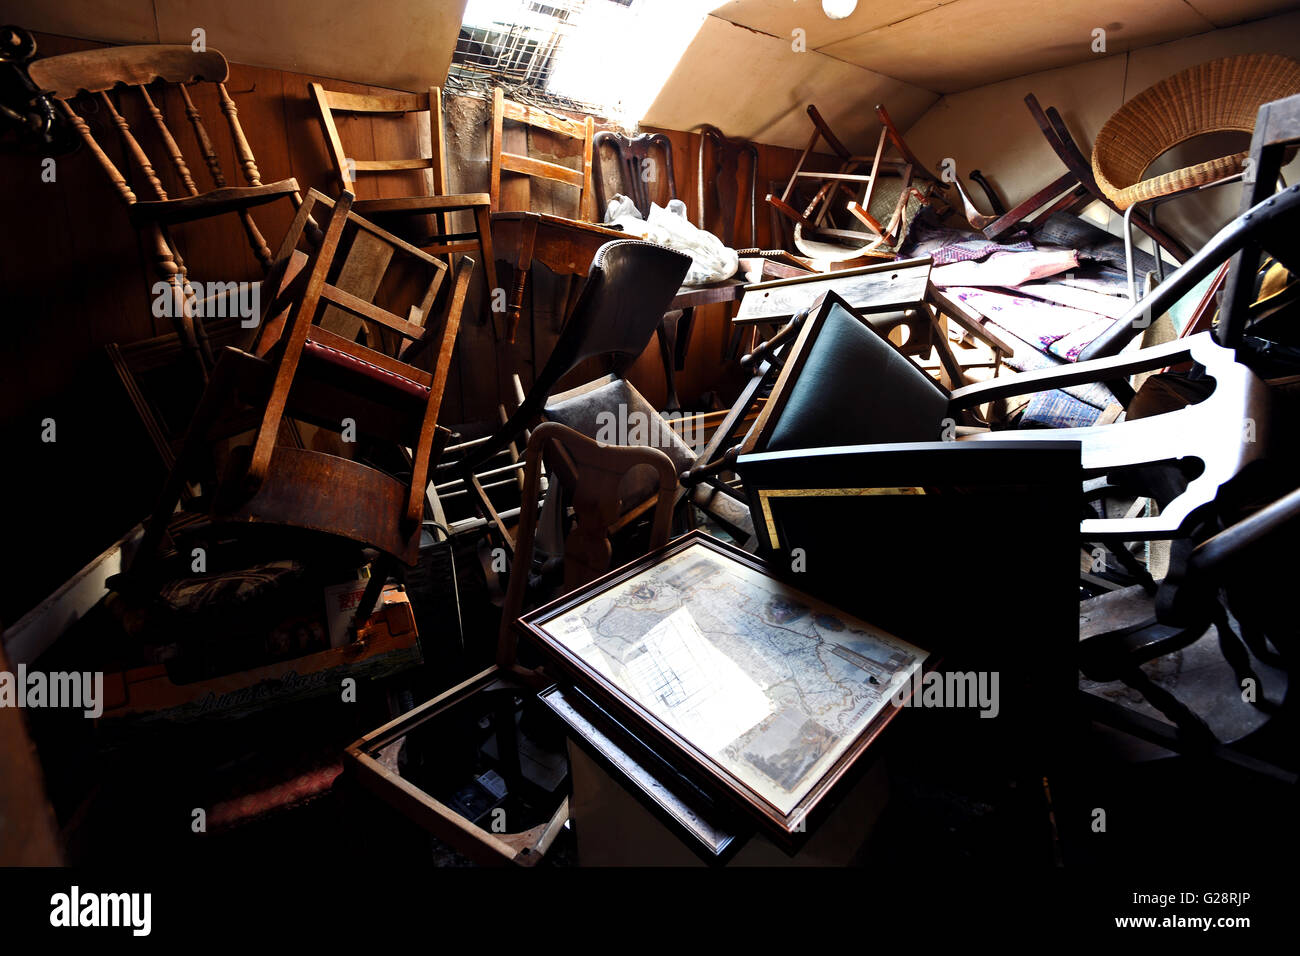 Messy Shop Stock Photos Amp Messy Shop Stock Images Alamy